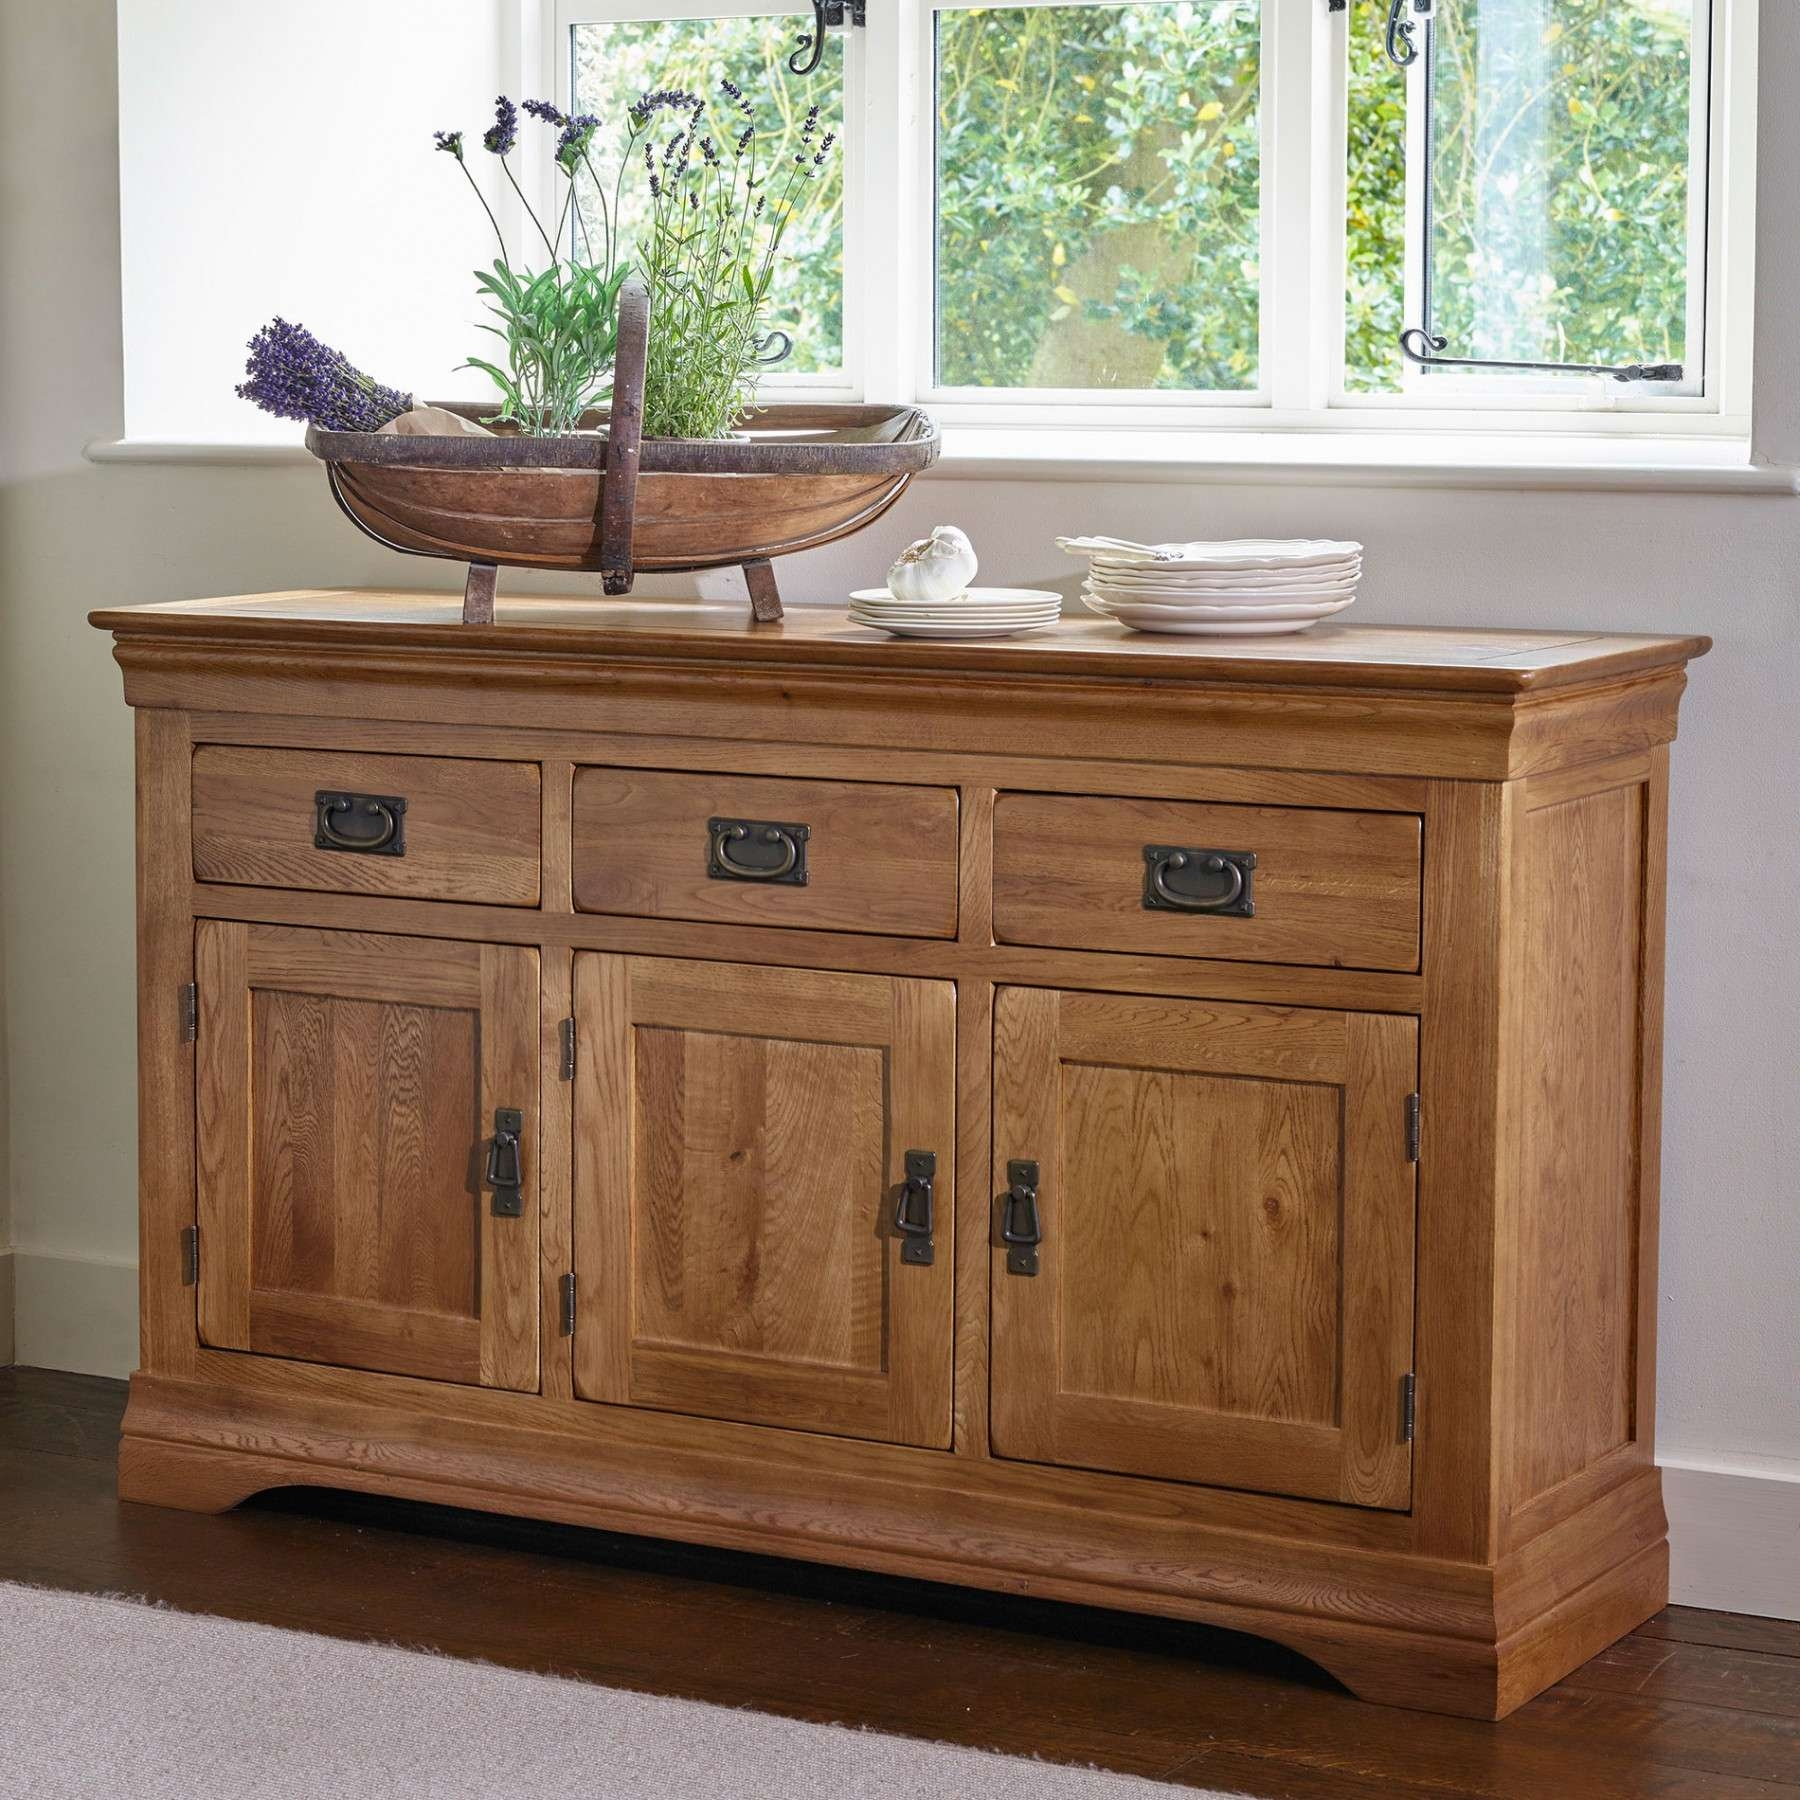 French Farmhouse Rustic Solid Oak Large Sideboard | Sideboards With Regard To Rustic Oak Large Sideboards (View 13 of 20)